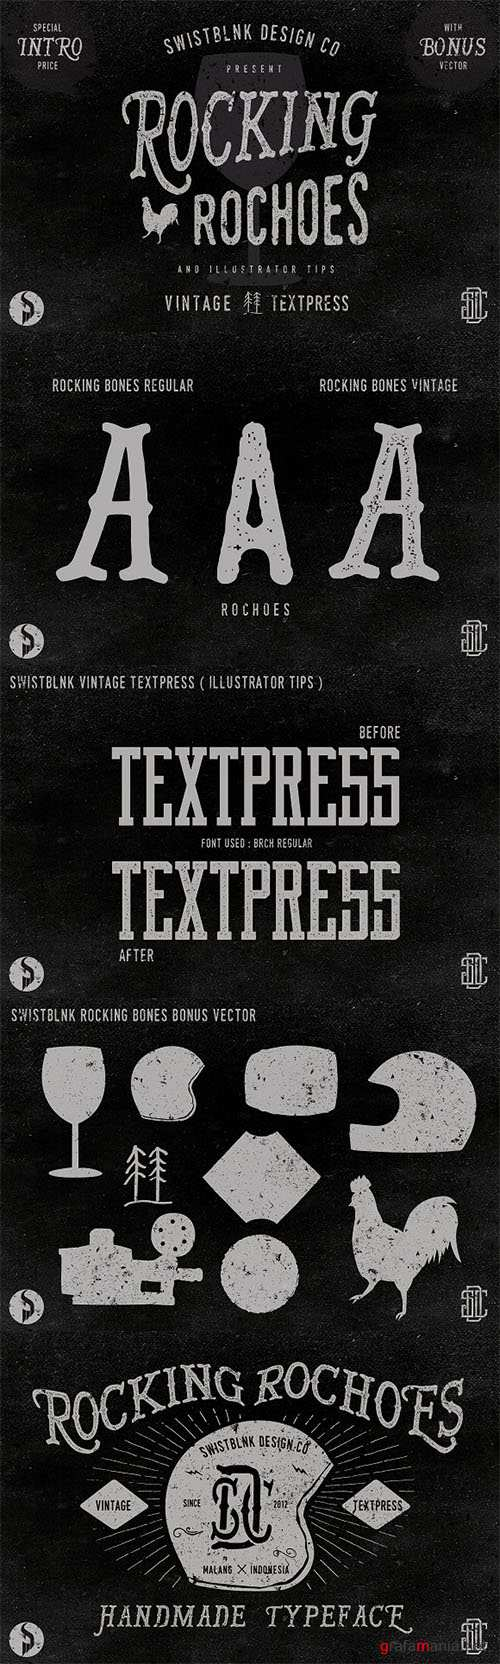 Rocking Rochoes Typeface 51254